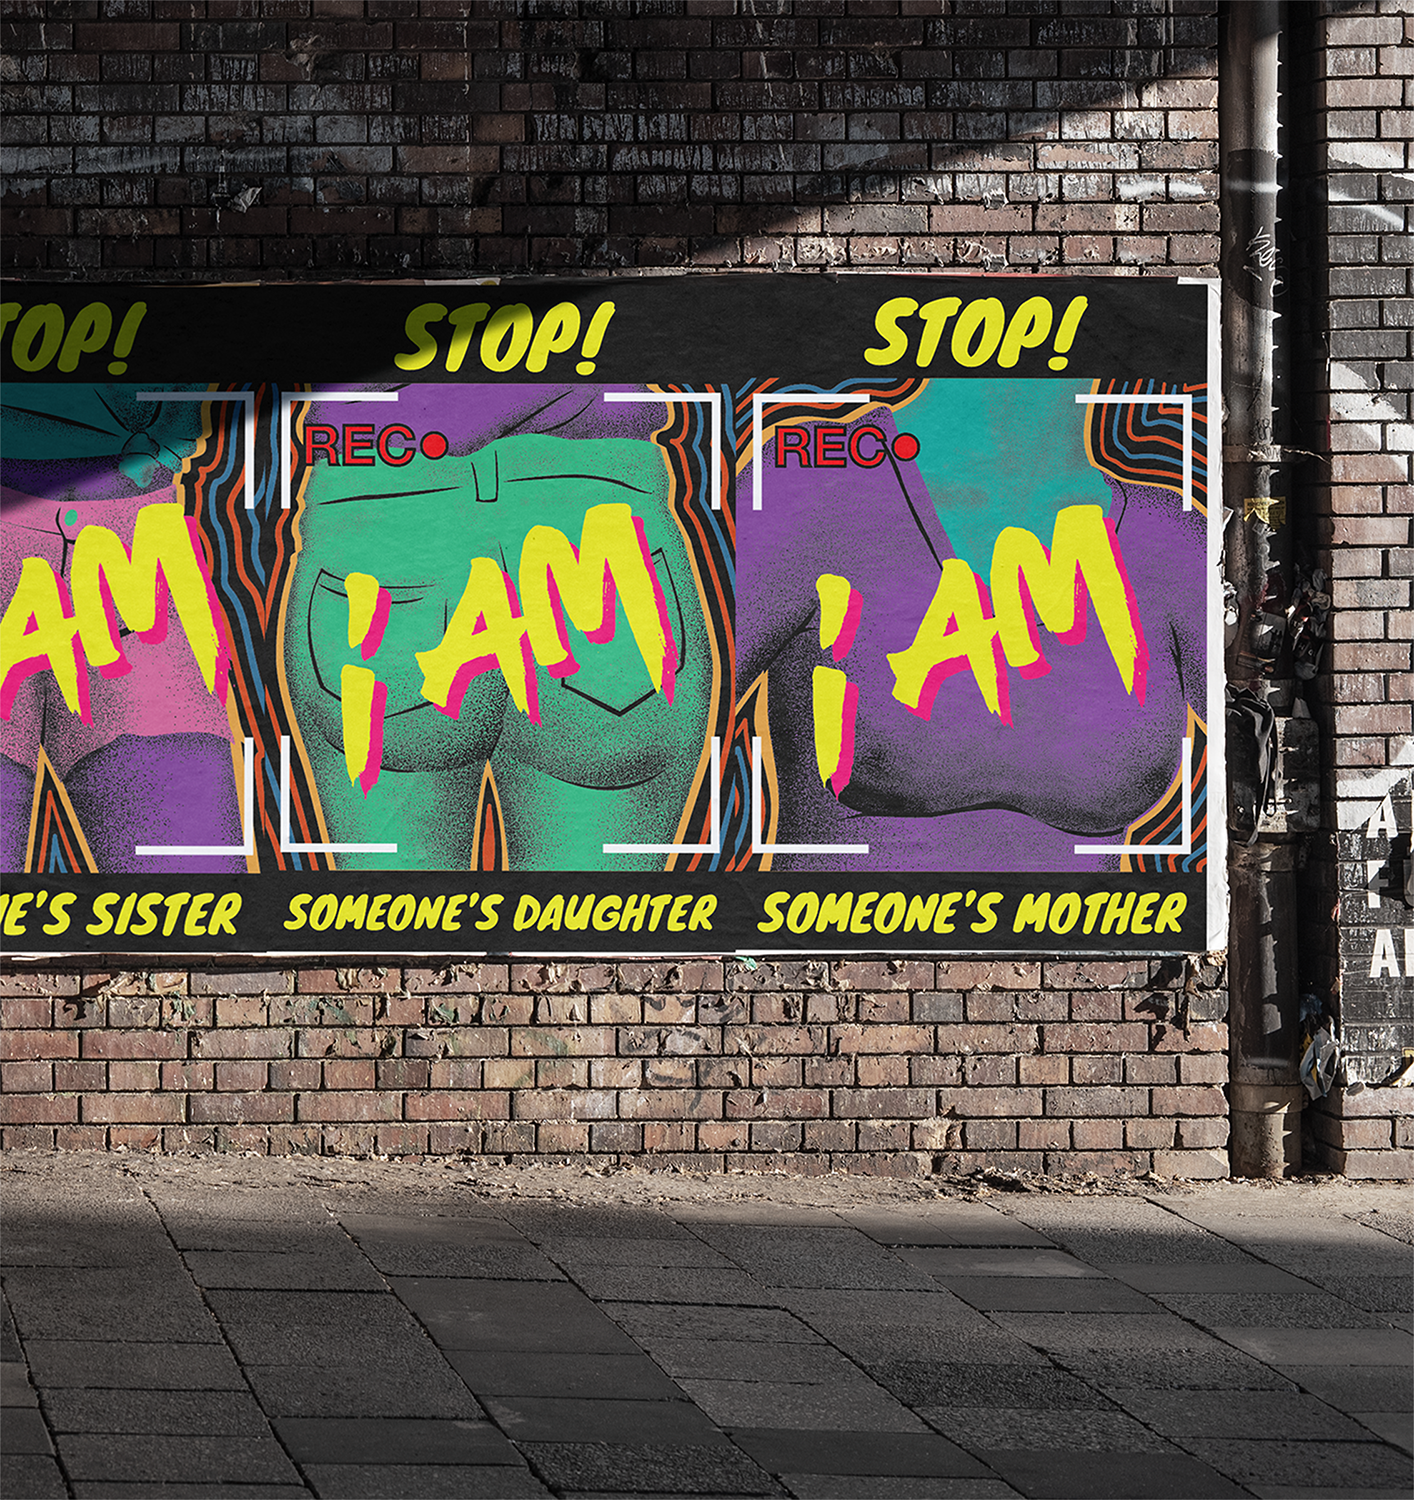 Stop! I AM - Women's Right Campaign